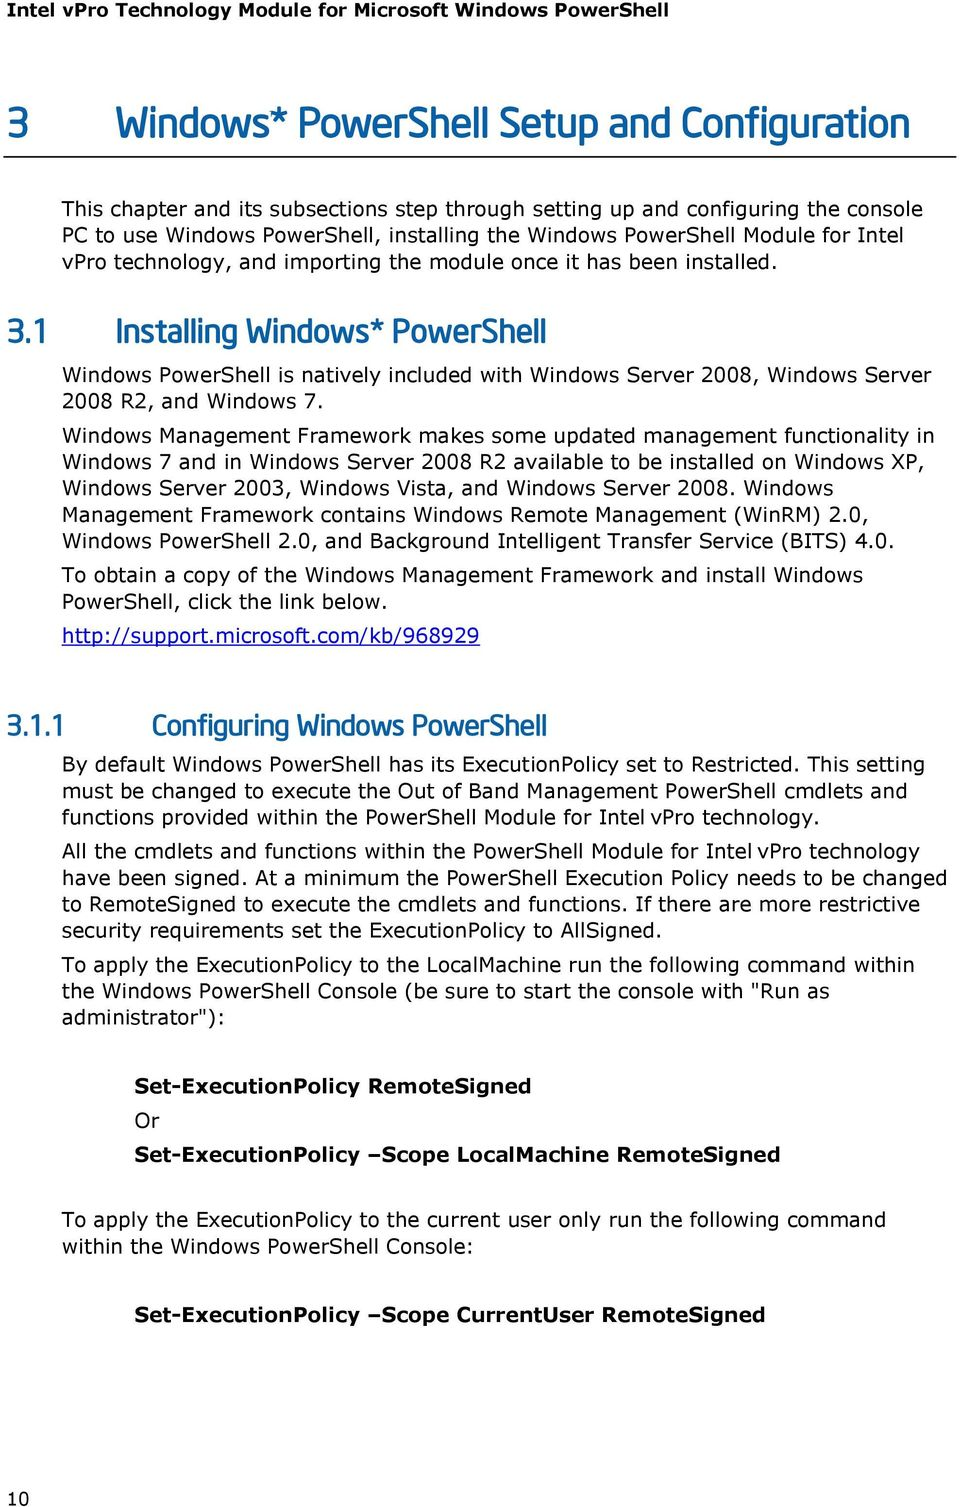 1 Installing Windows* PowerShell Windows PowerShell is natively included with Windows Server 2008, Windows Server 2008 R2, and Windows 7.